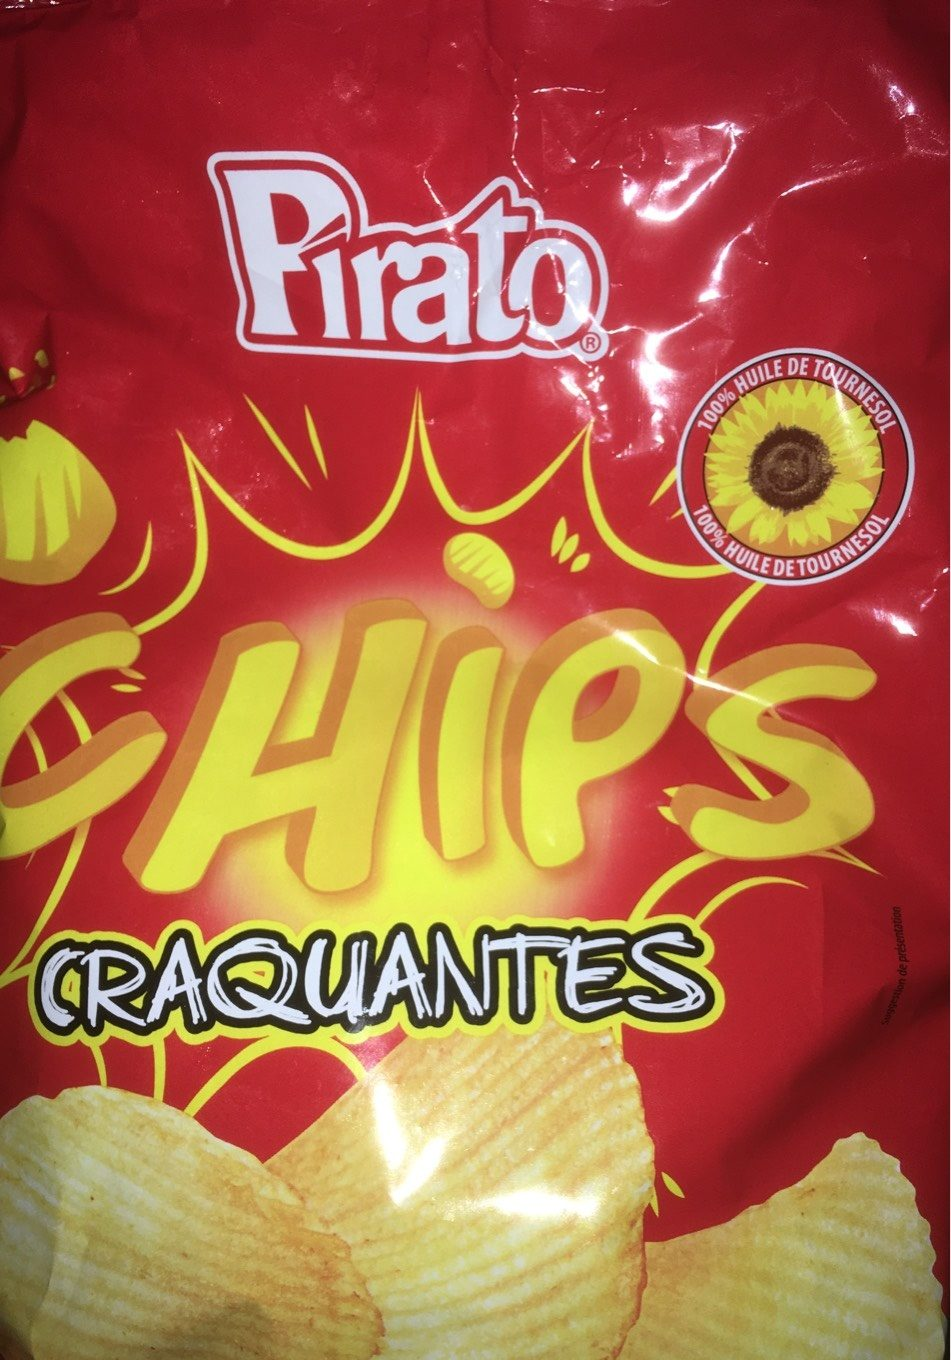 Chips craquantes - Product - fr